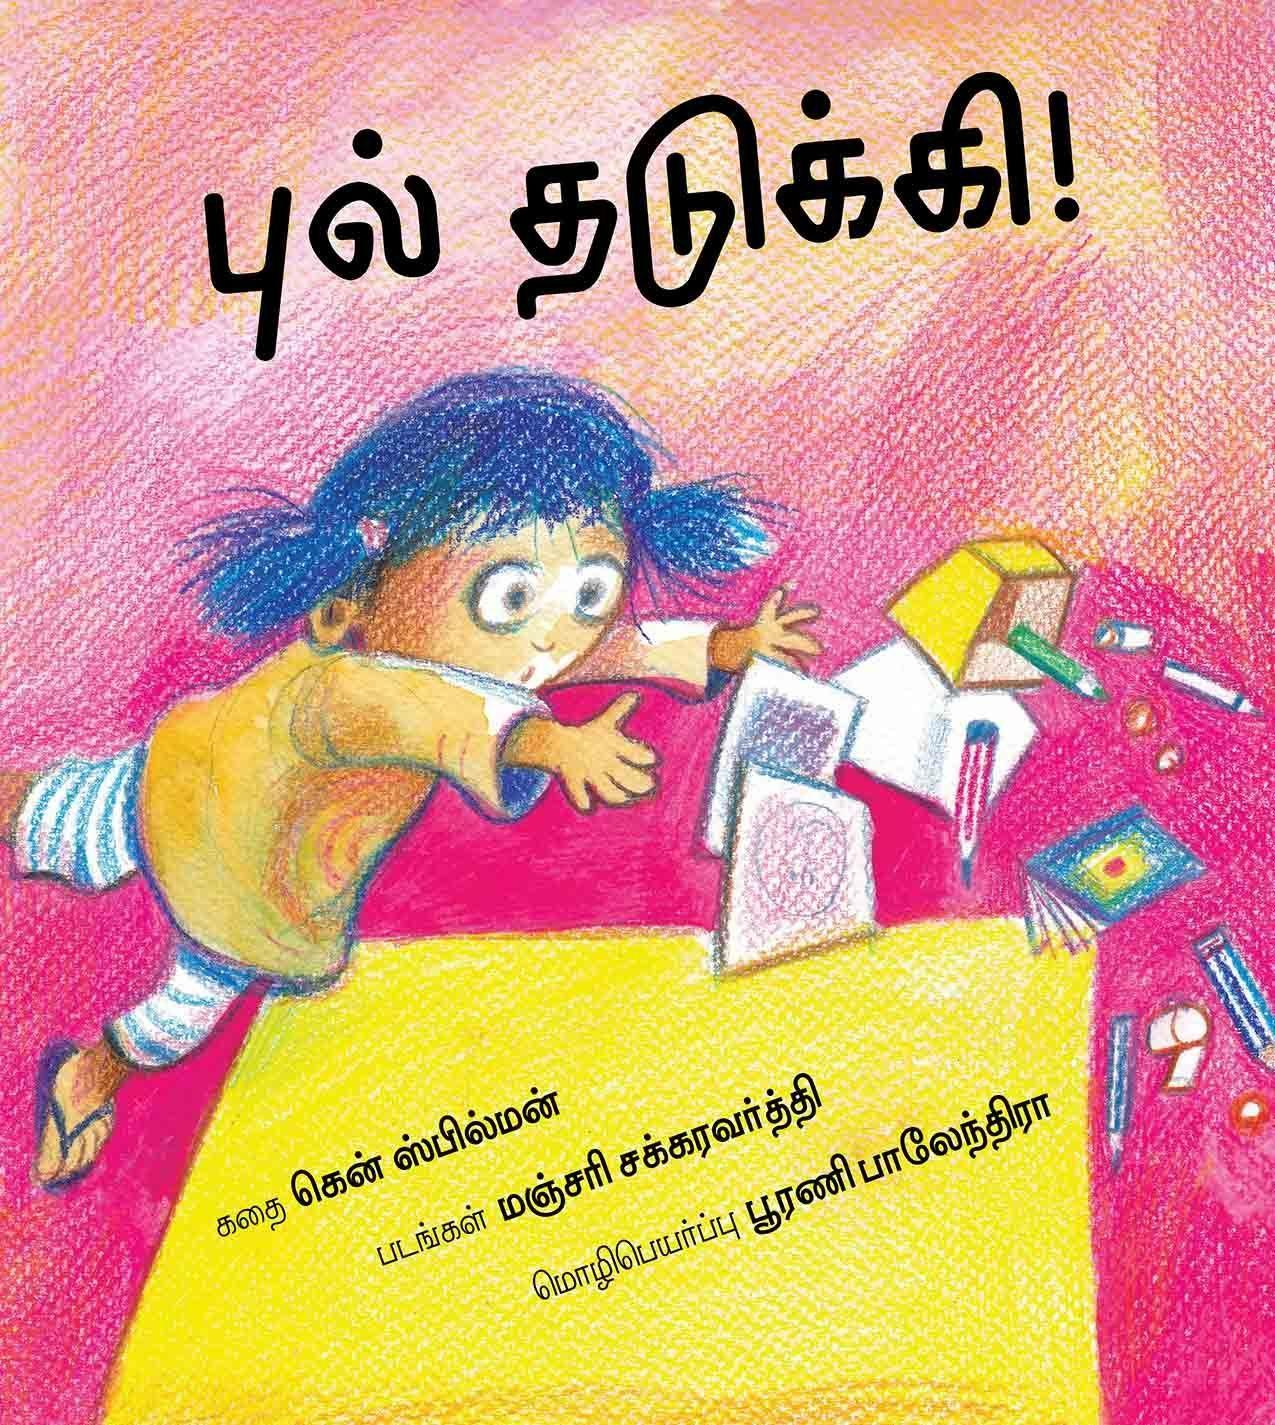 Clumsy!/Pul Thadukki! (Tamil) Picture Books Age_5+ ISBN: 9789350467411